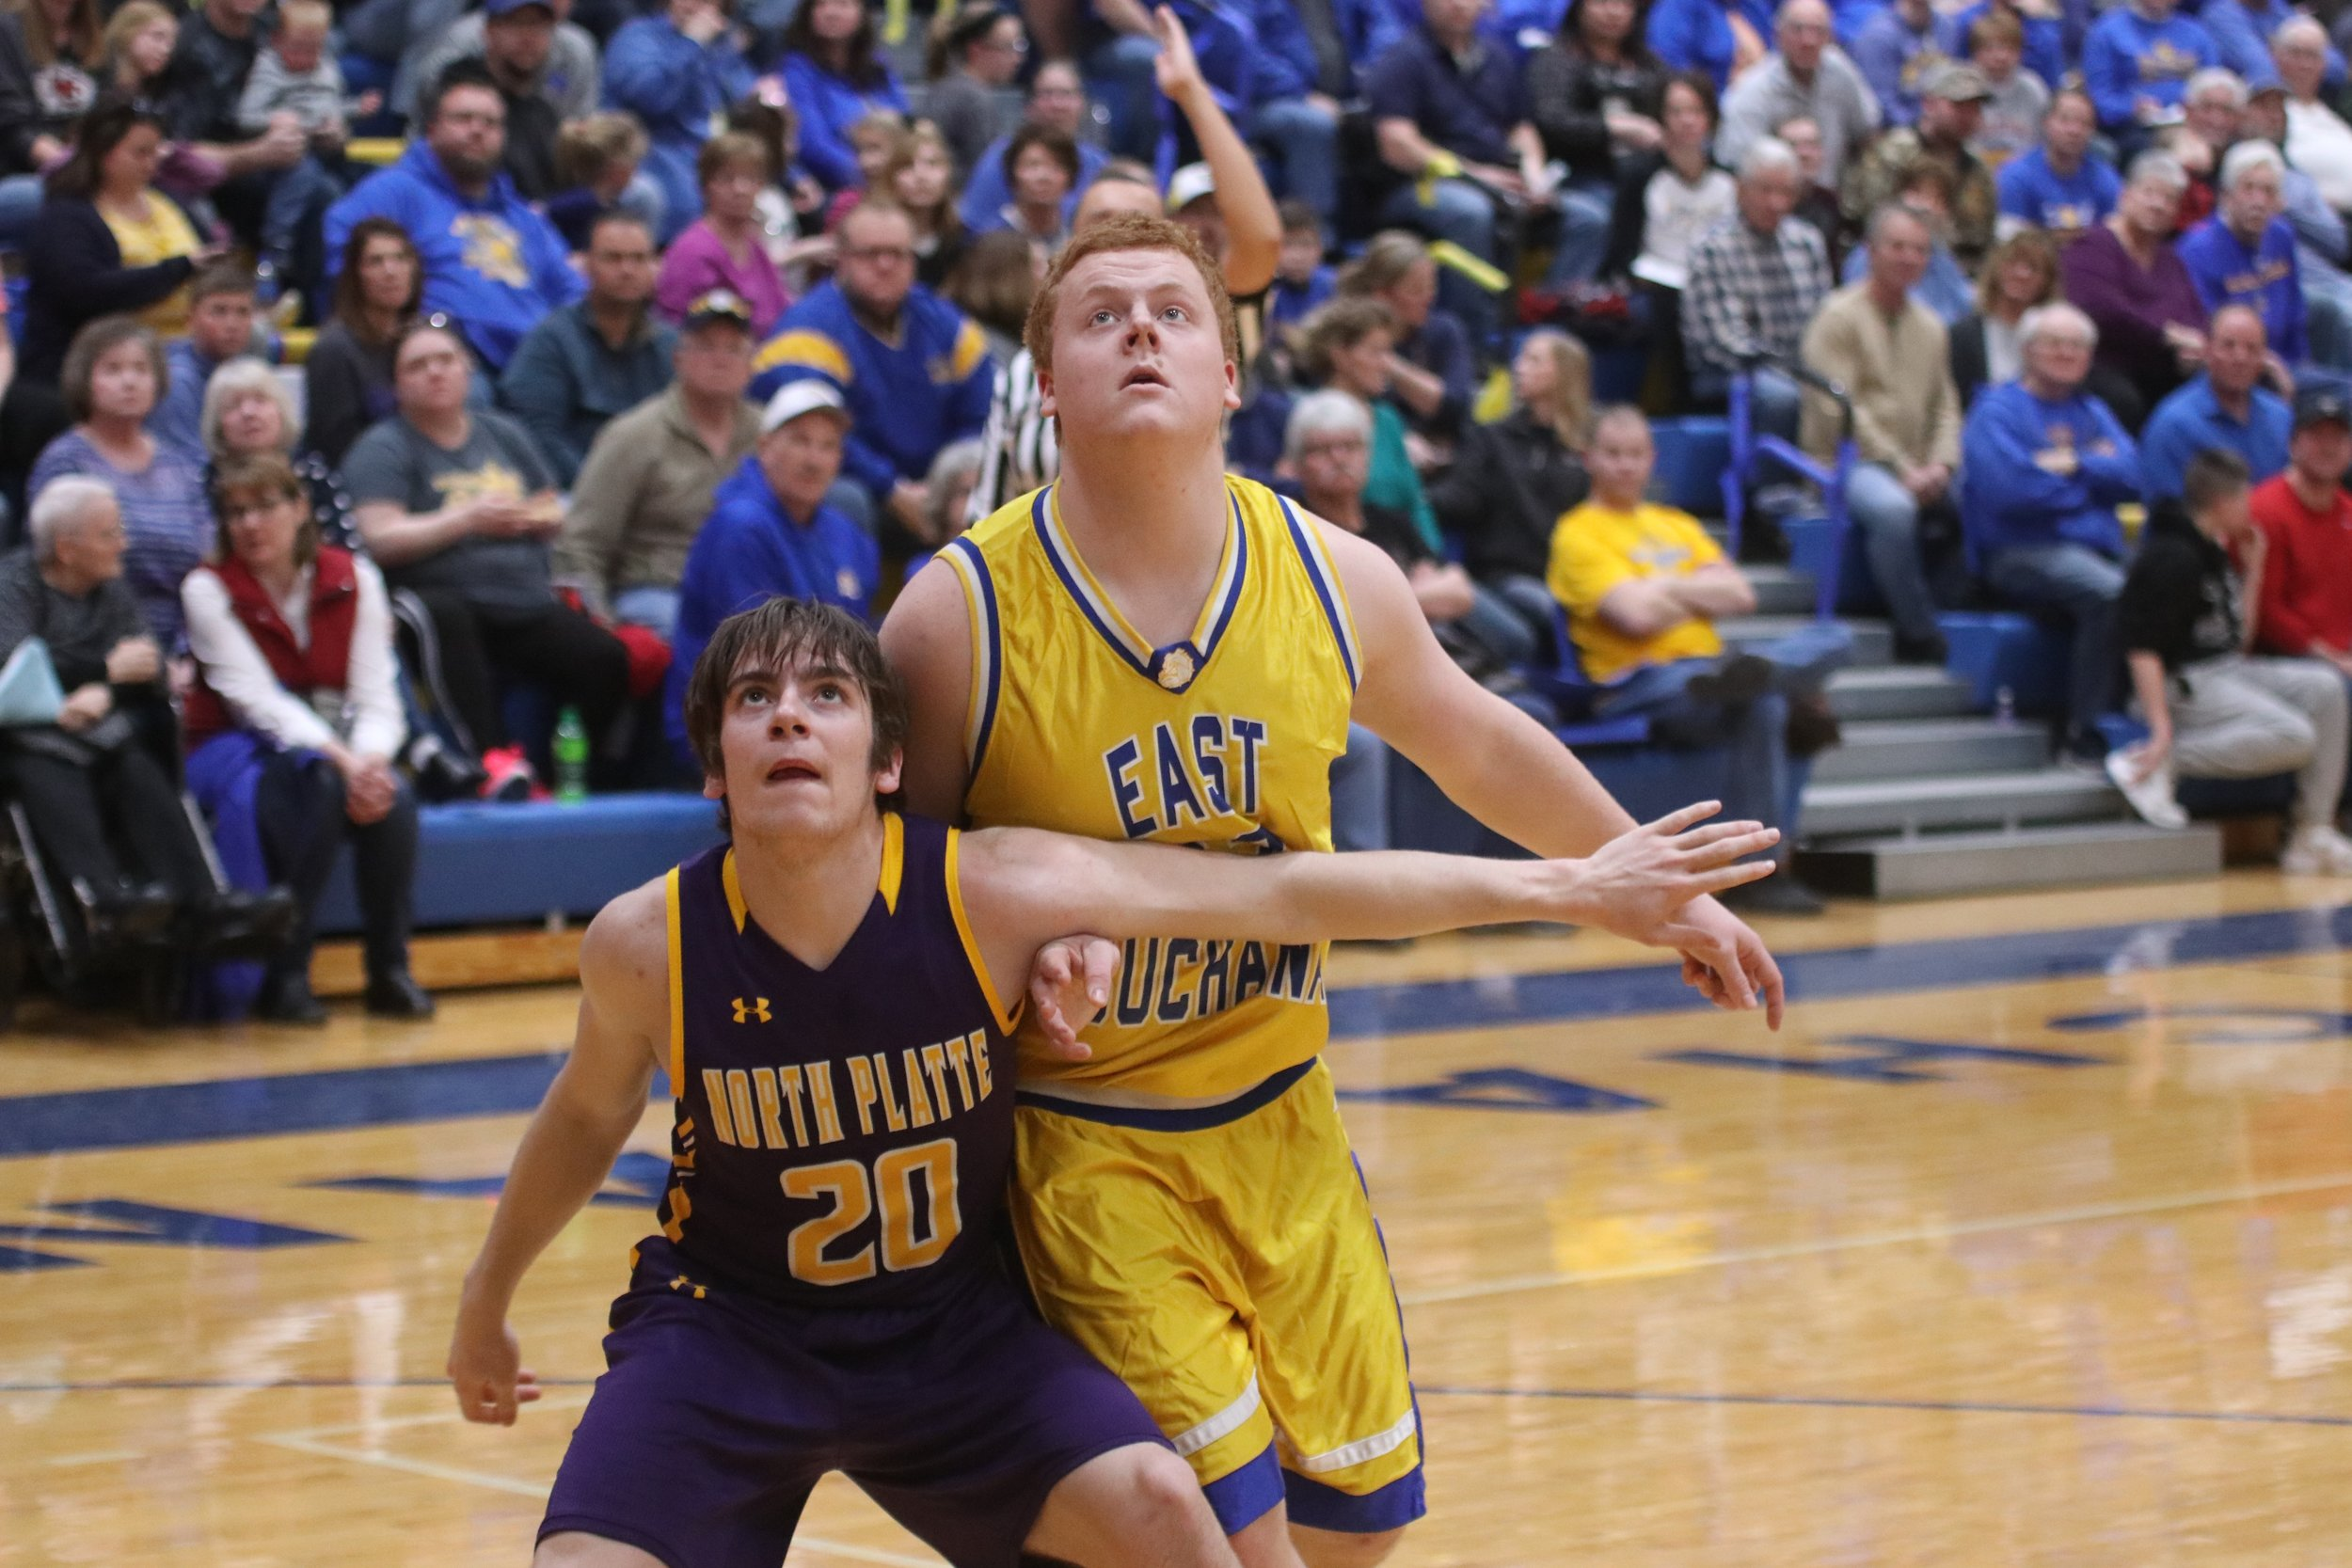 CLINTON COUNTY LEADER/Special to the Citizen  North Platte's Ty French, left, gets position against an East Buchanan player during a game on Friday, Feb. 1 in Gower, Mo.